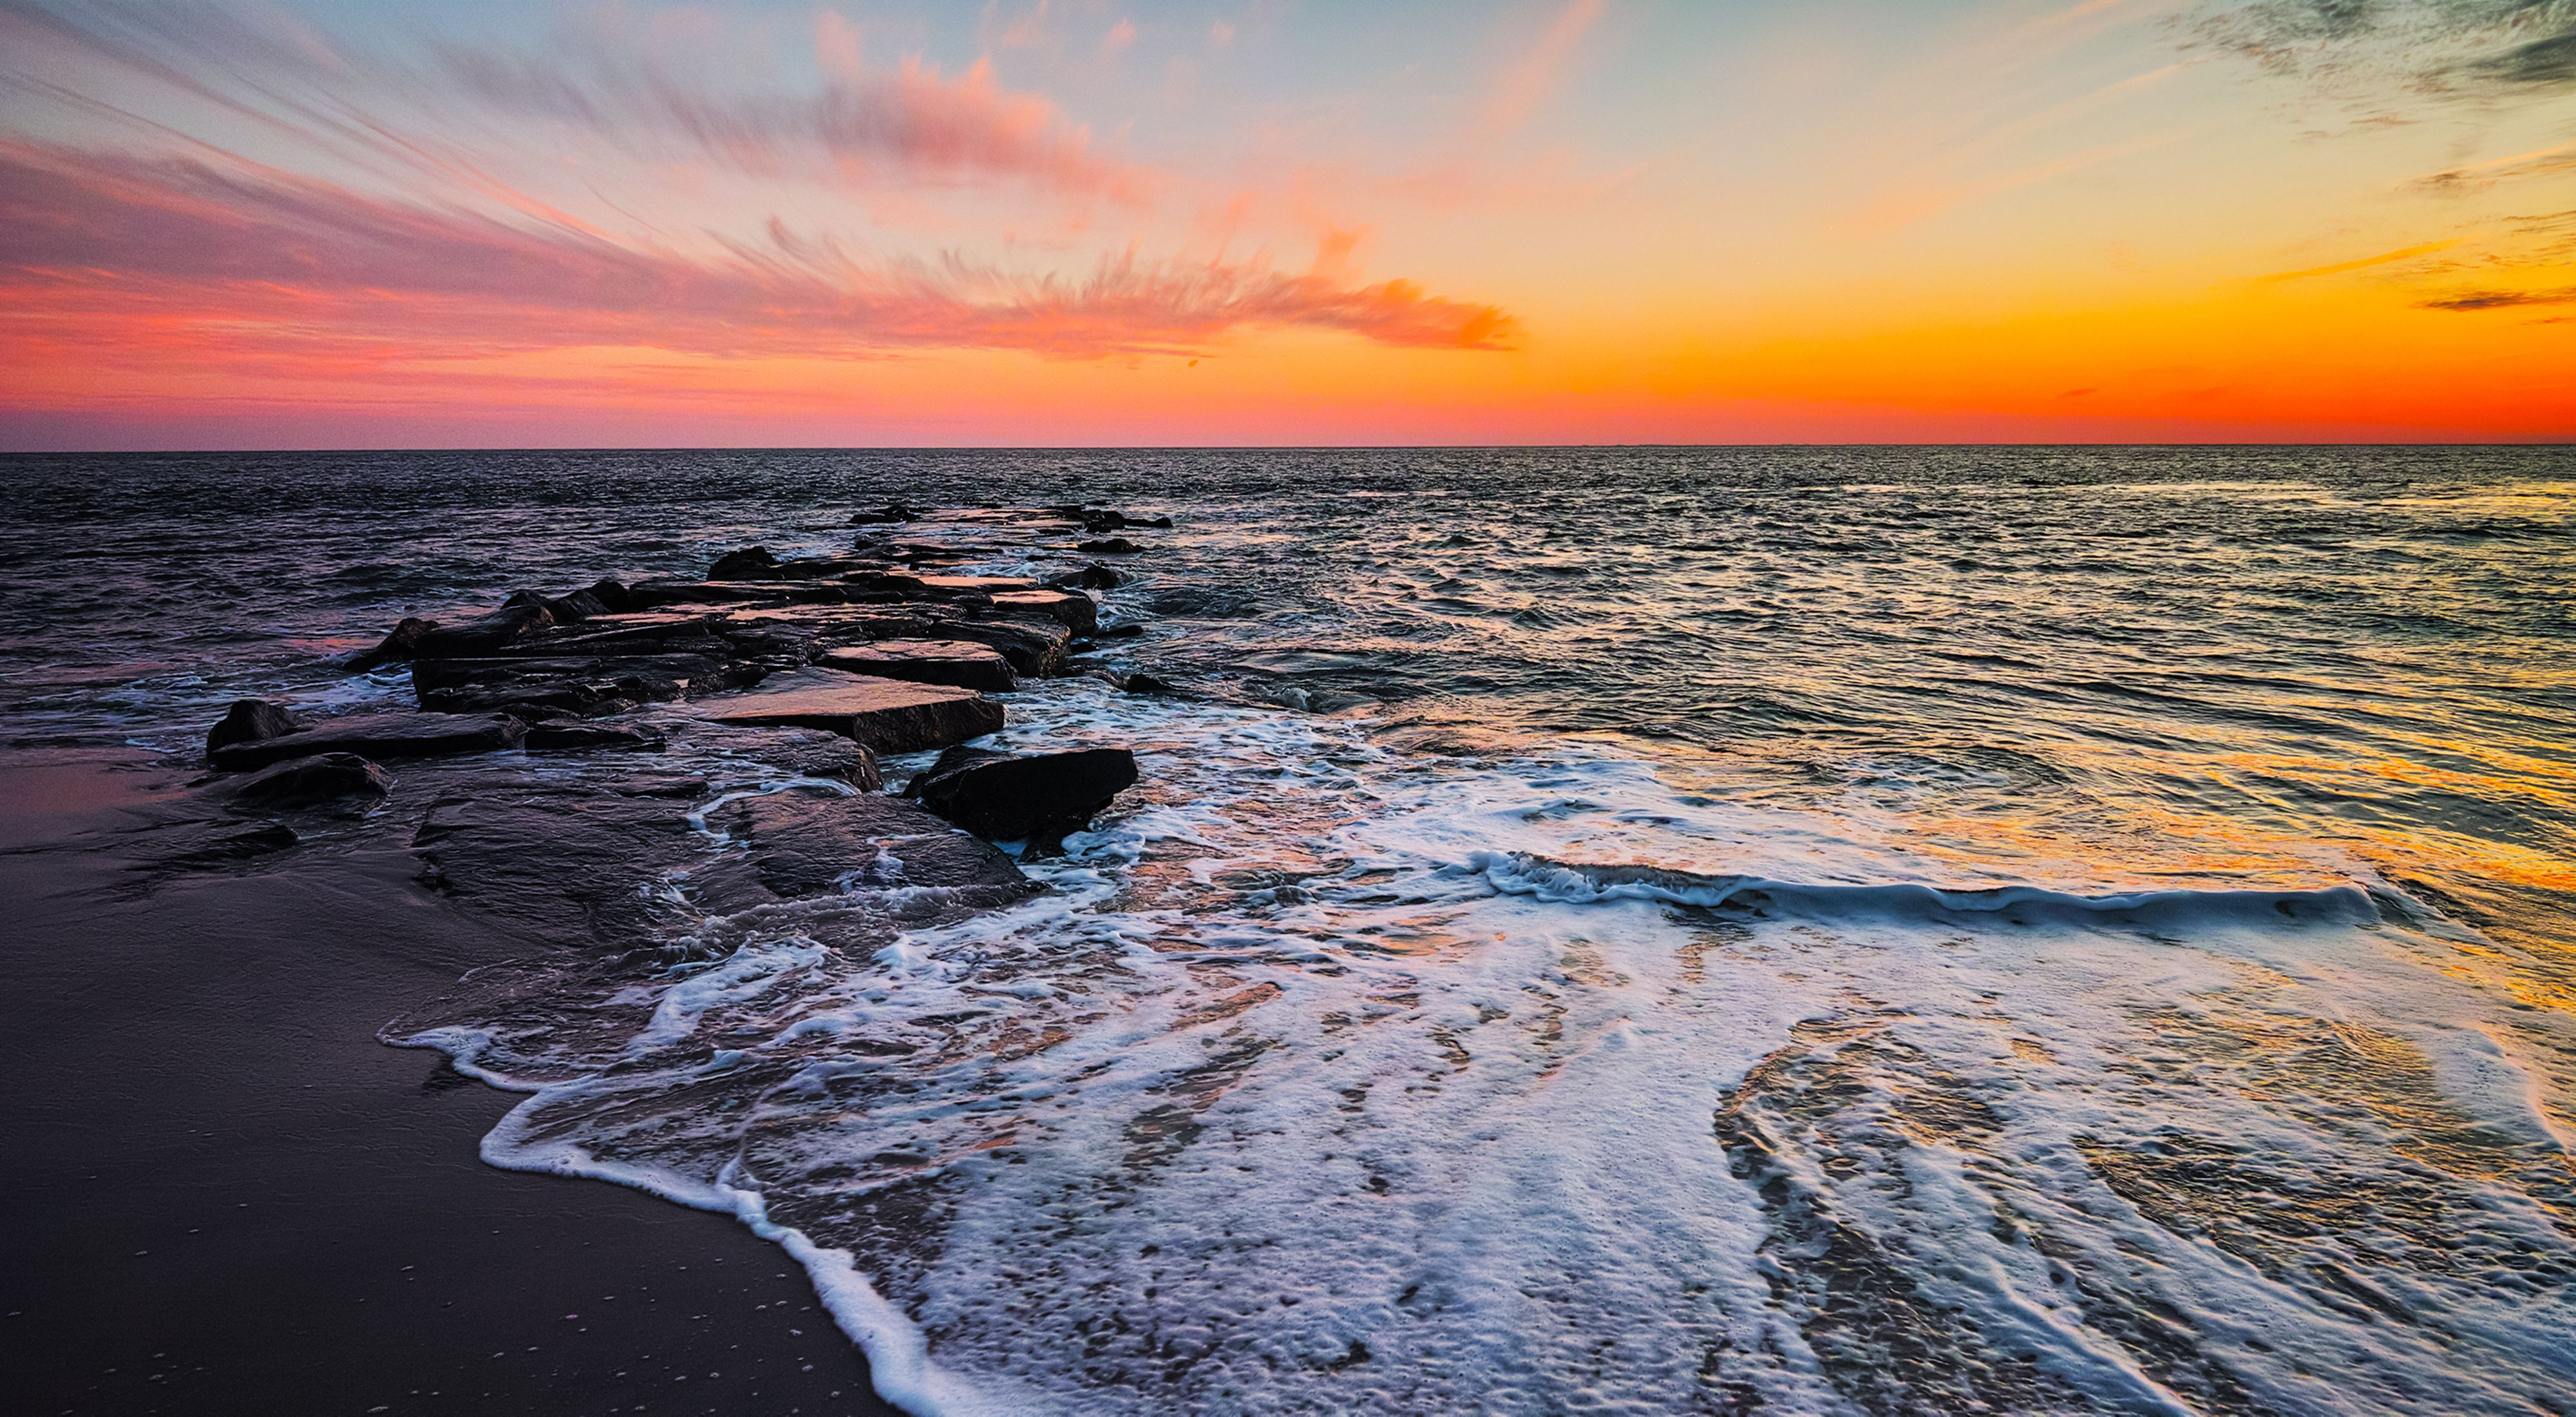 The sun is setting over a beach with waves breaking on the sand and rocks.